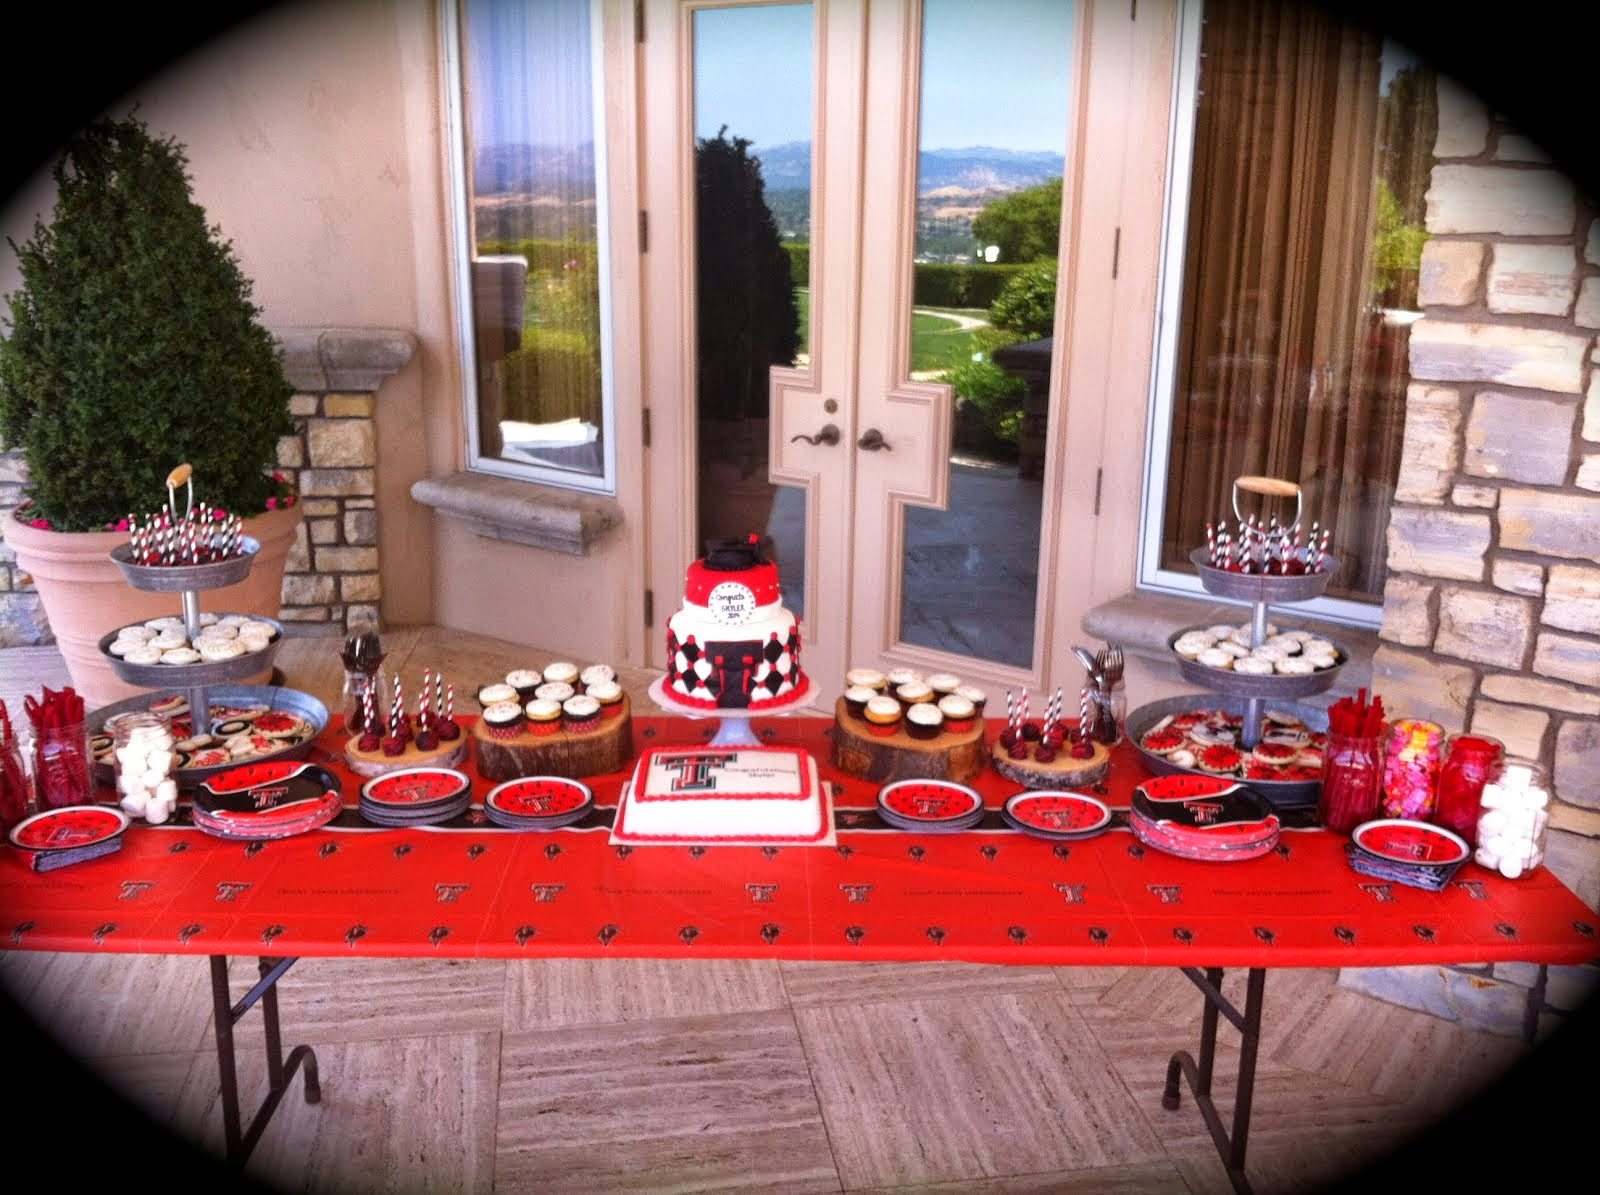 TEXAS TECH GRADUATION DESSERT TABLE